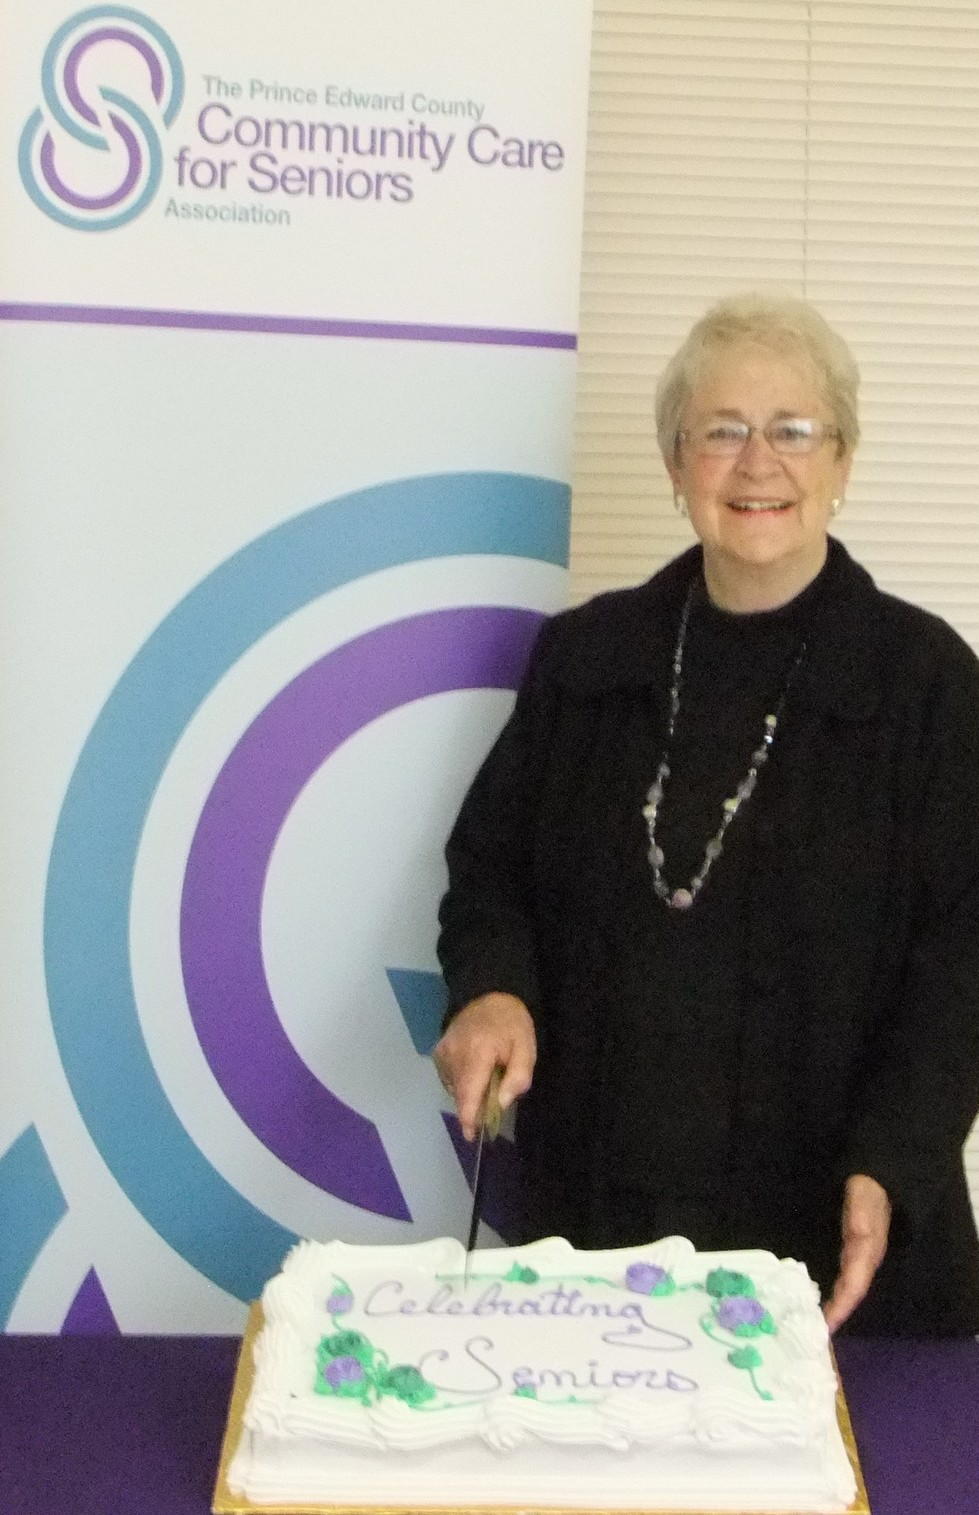 Maureen Finnegan, Founding President of Community Care's Foundation